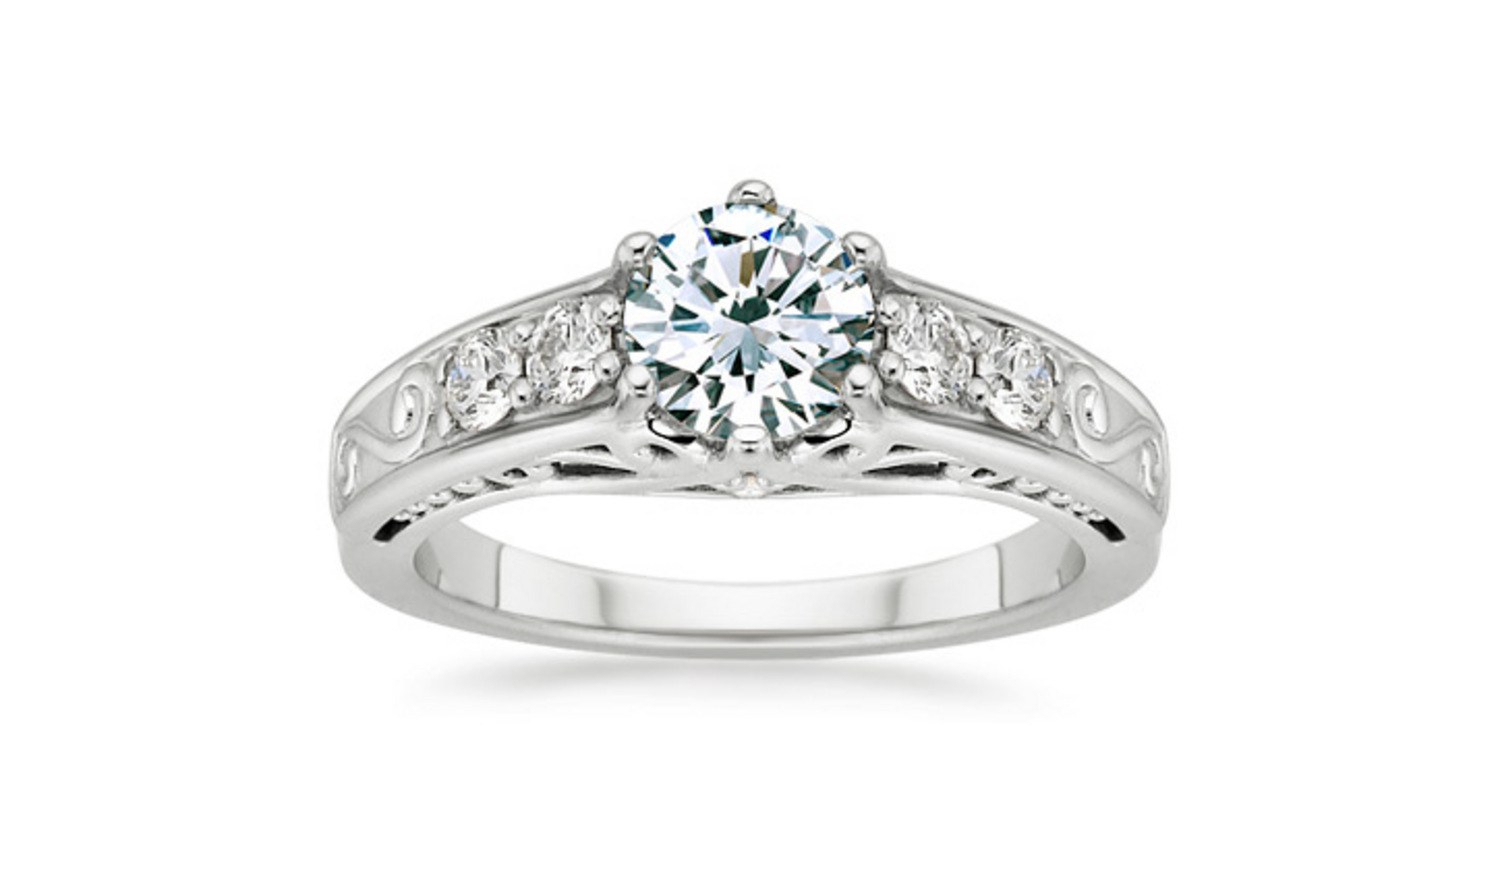 62 Diamond Engagement Rings Under $5,000 | Glamour In Most Up To Date Diamond Bold Five Stone Anniversary Bands In White Gold (View 8 of 25)